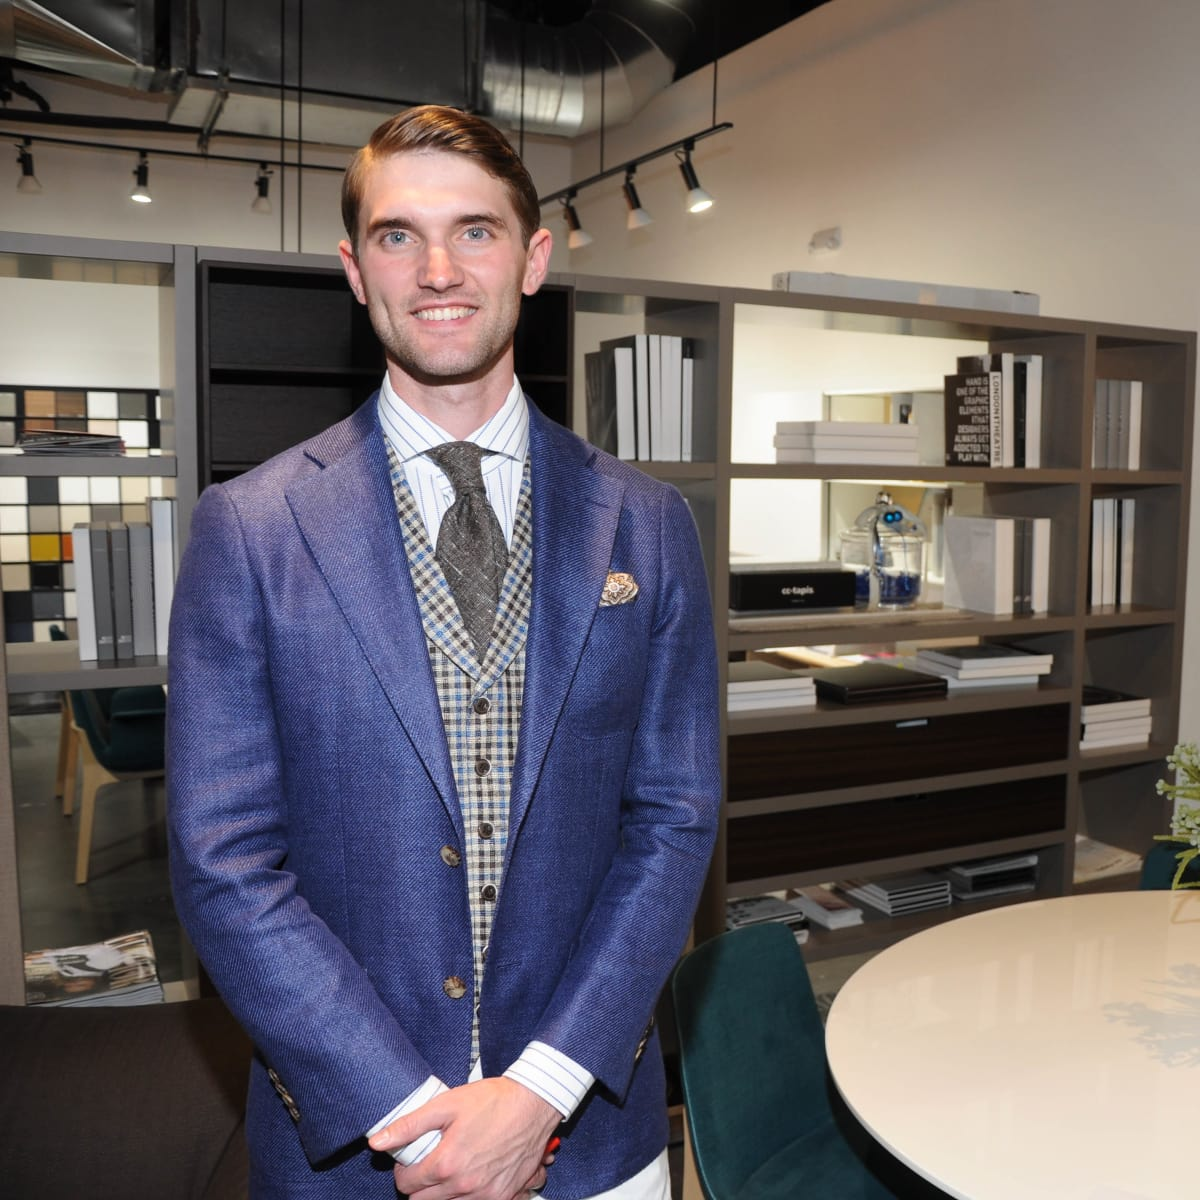 West Ave Destination Design, Neal Hamil model wearing SuitSupply suit